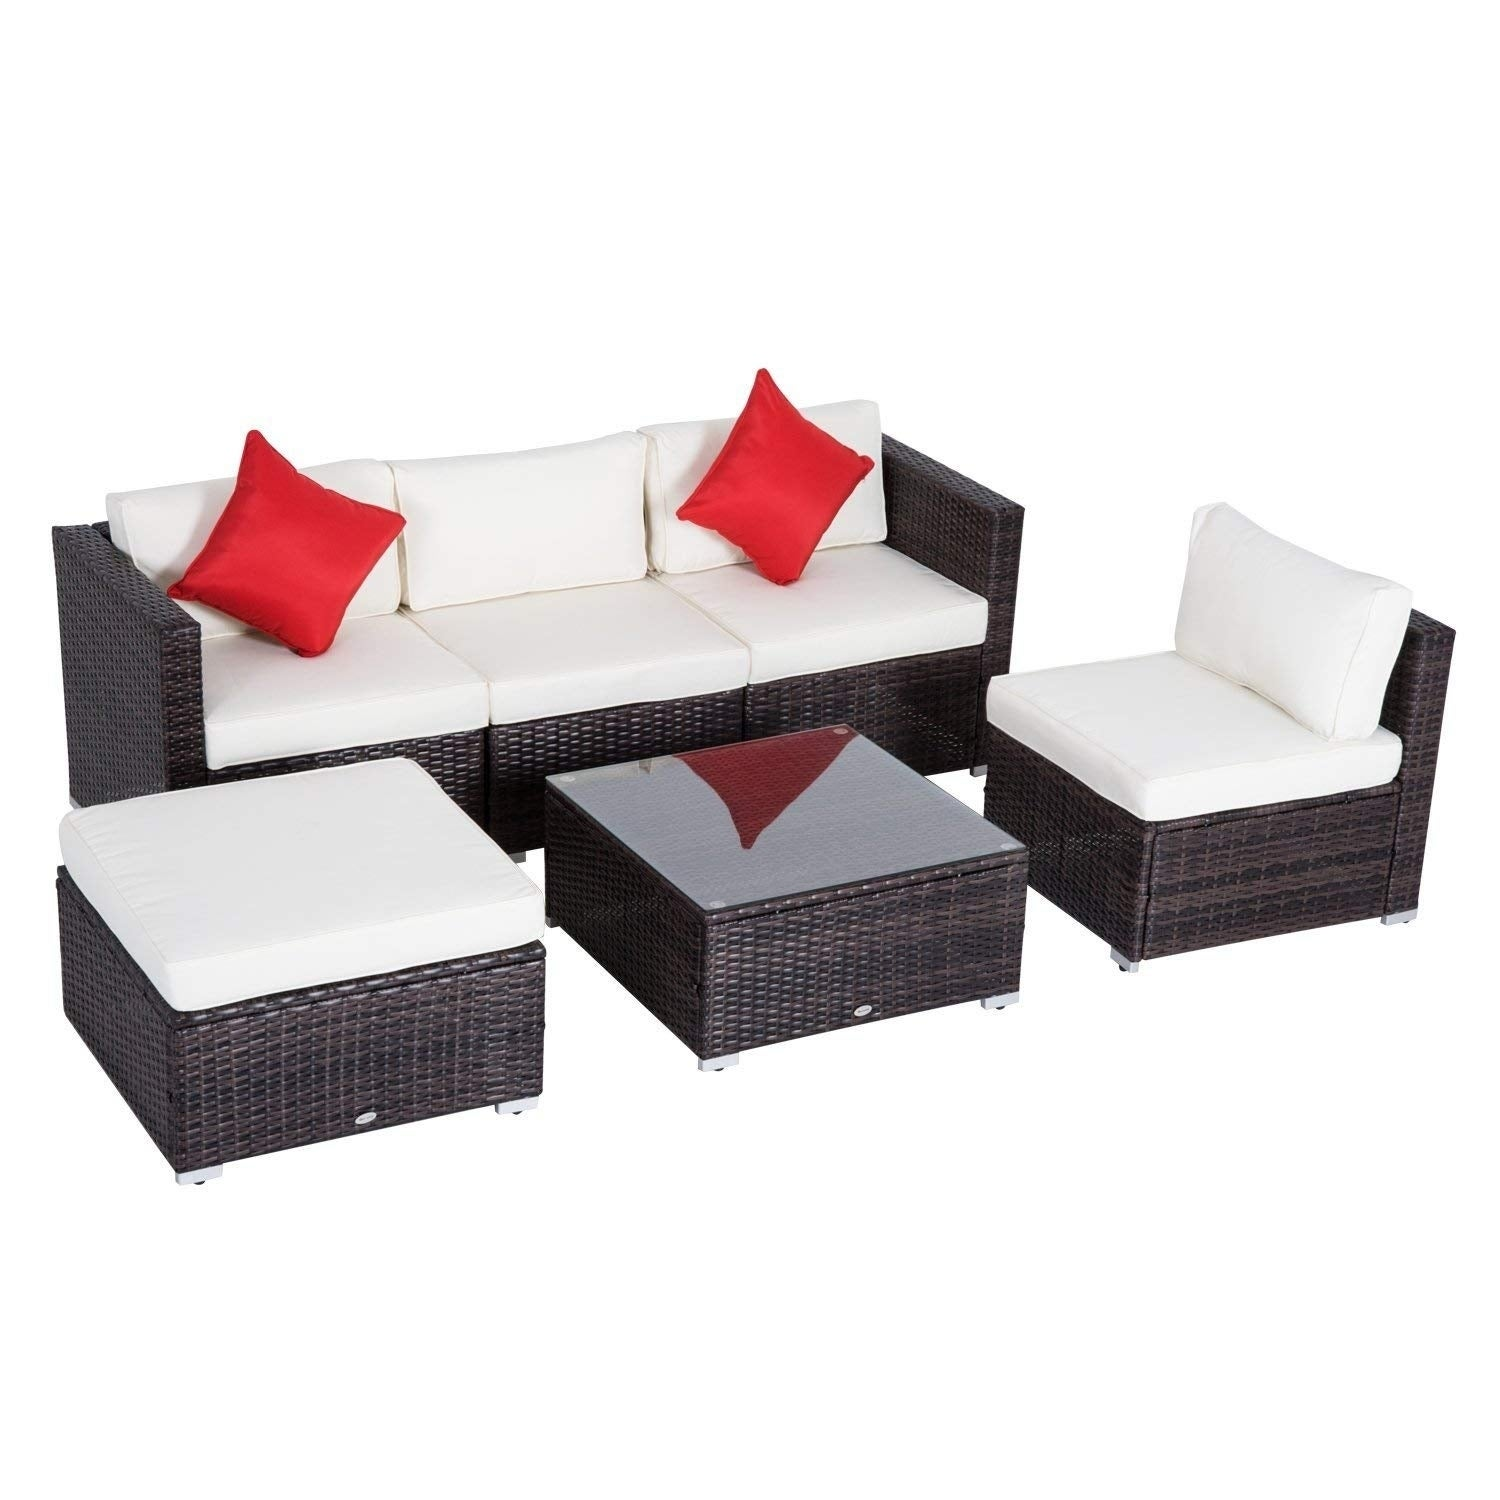 Shop Outsunny 6 Pc Outdoor Patio Rattan Wicker Sectional Sofa